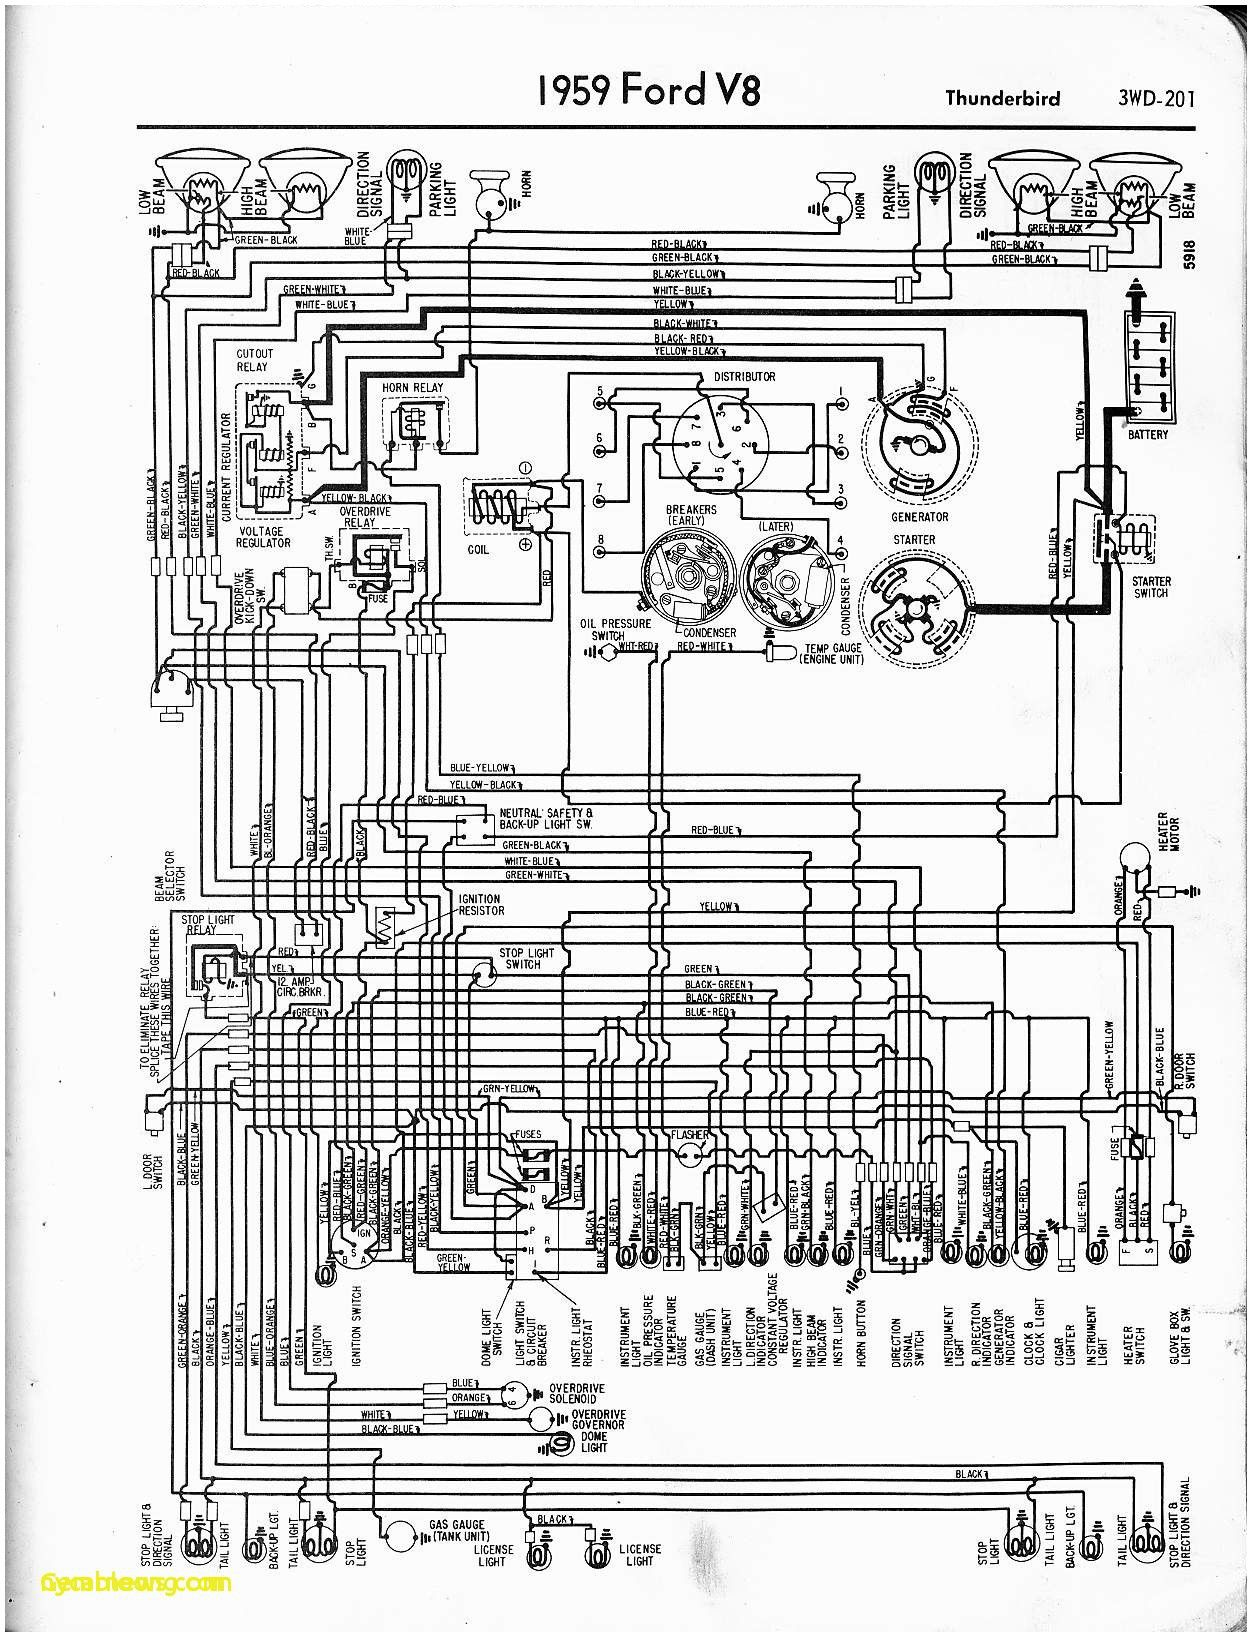 1971 ford f250 wiring diagram 1962 ford f250 wiring diagram e3 wiring diagram  1962 ford f250 wiring diagram e3